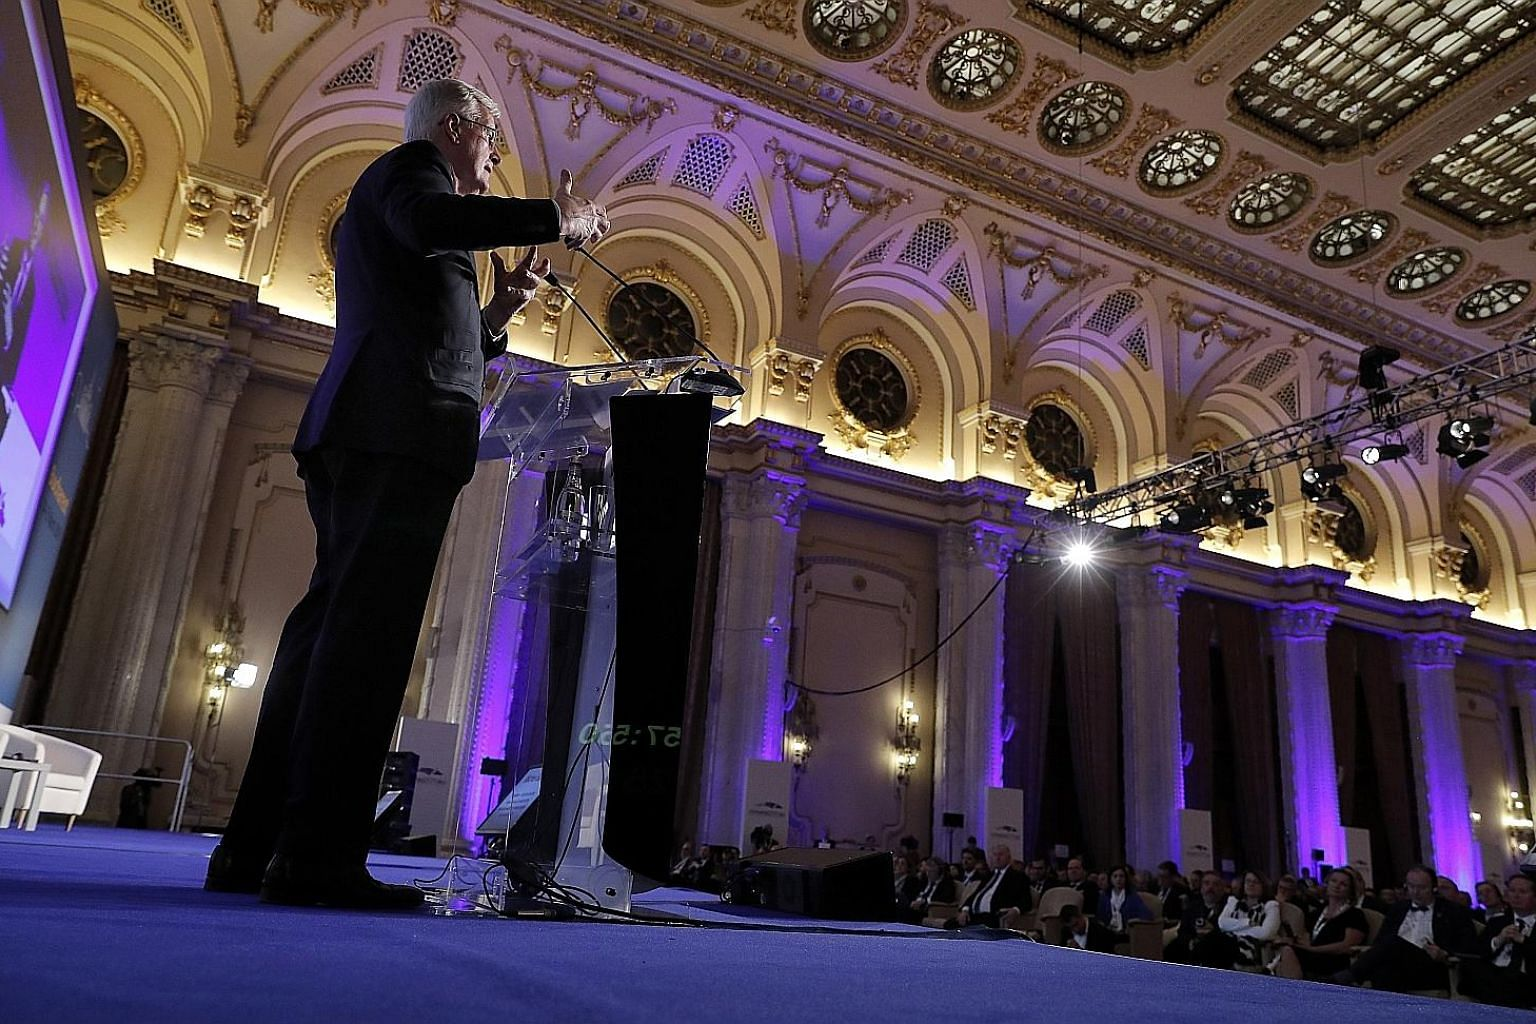 European Union chief Brexit negotiator Michel Barnier speaking on the impact of Brexit at the 8th European Summit of Regions and Cities on Thursday at the Romanian Parliament in Bucharest. As things now stand, Britain's politicians are no longer able